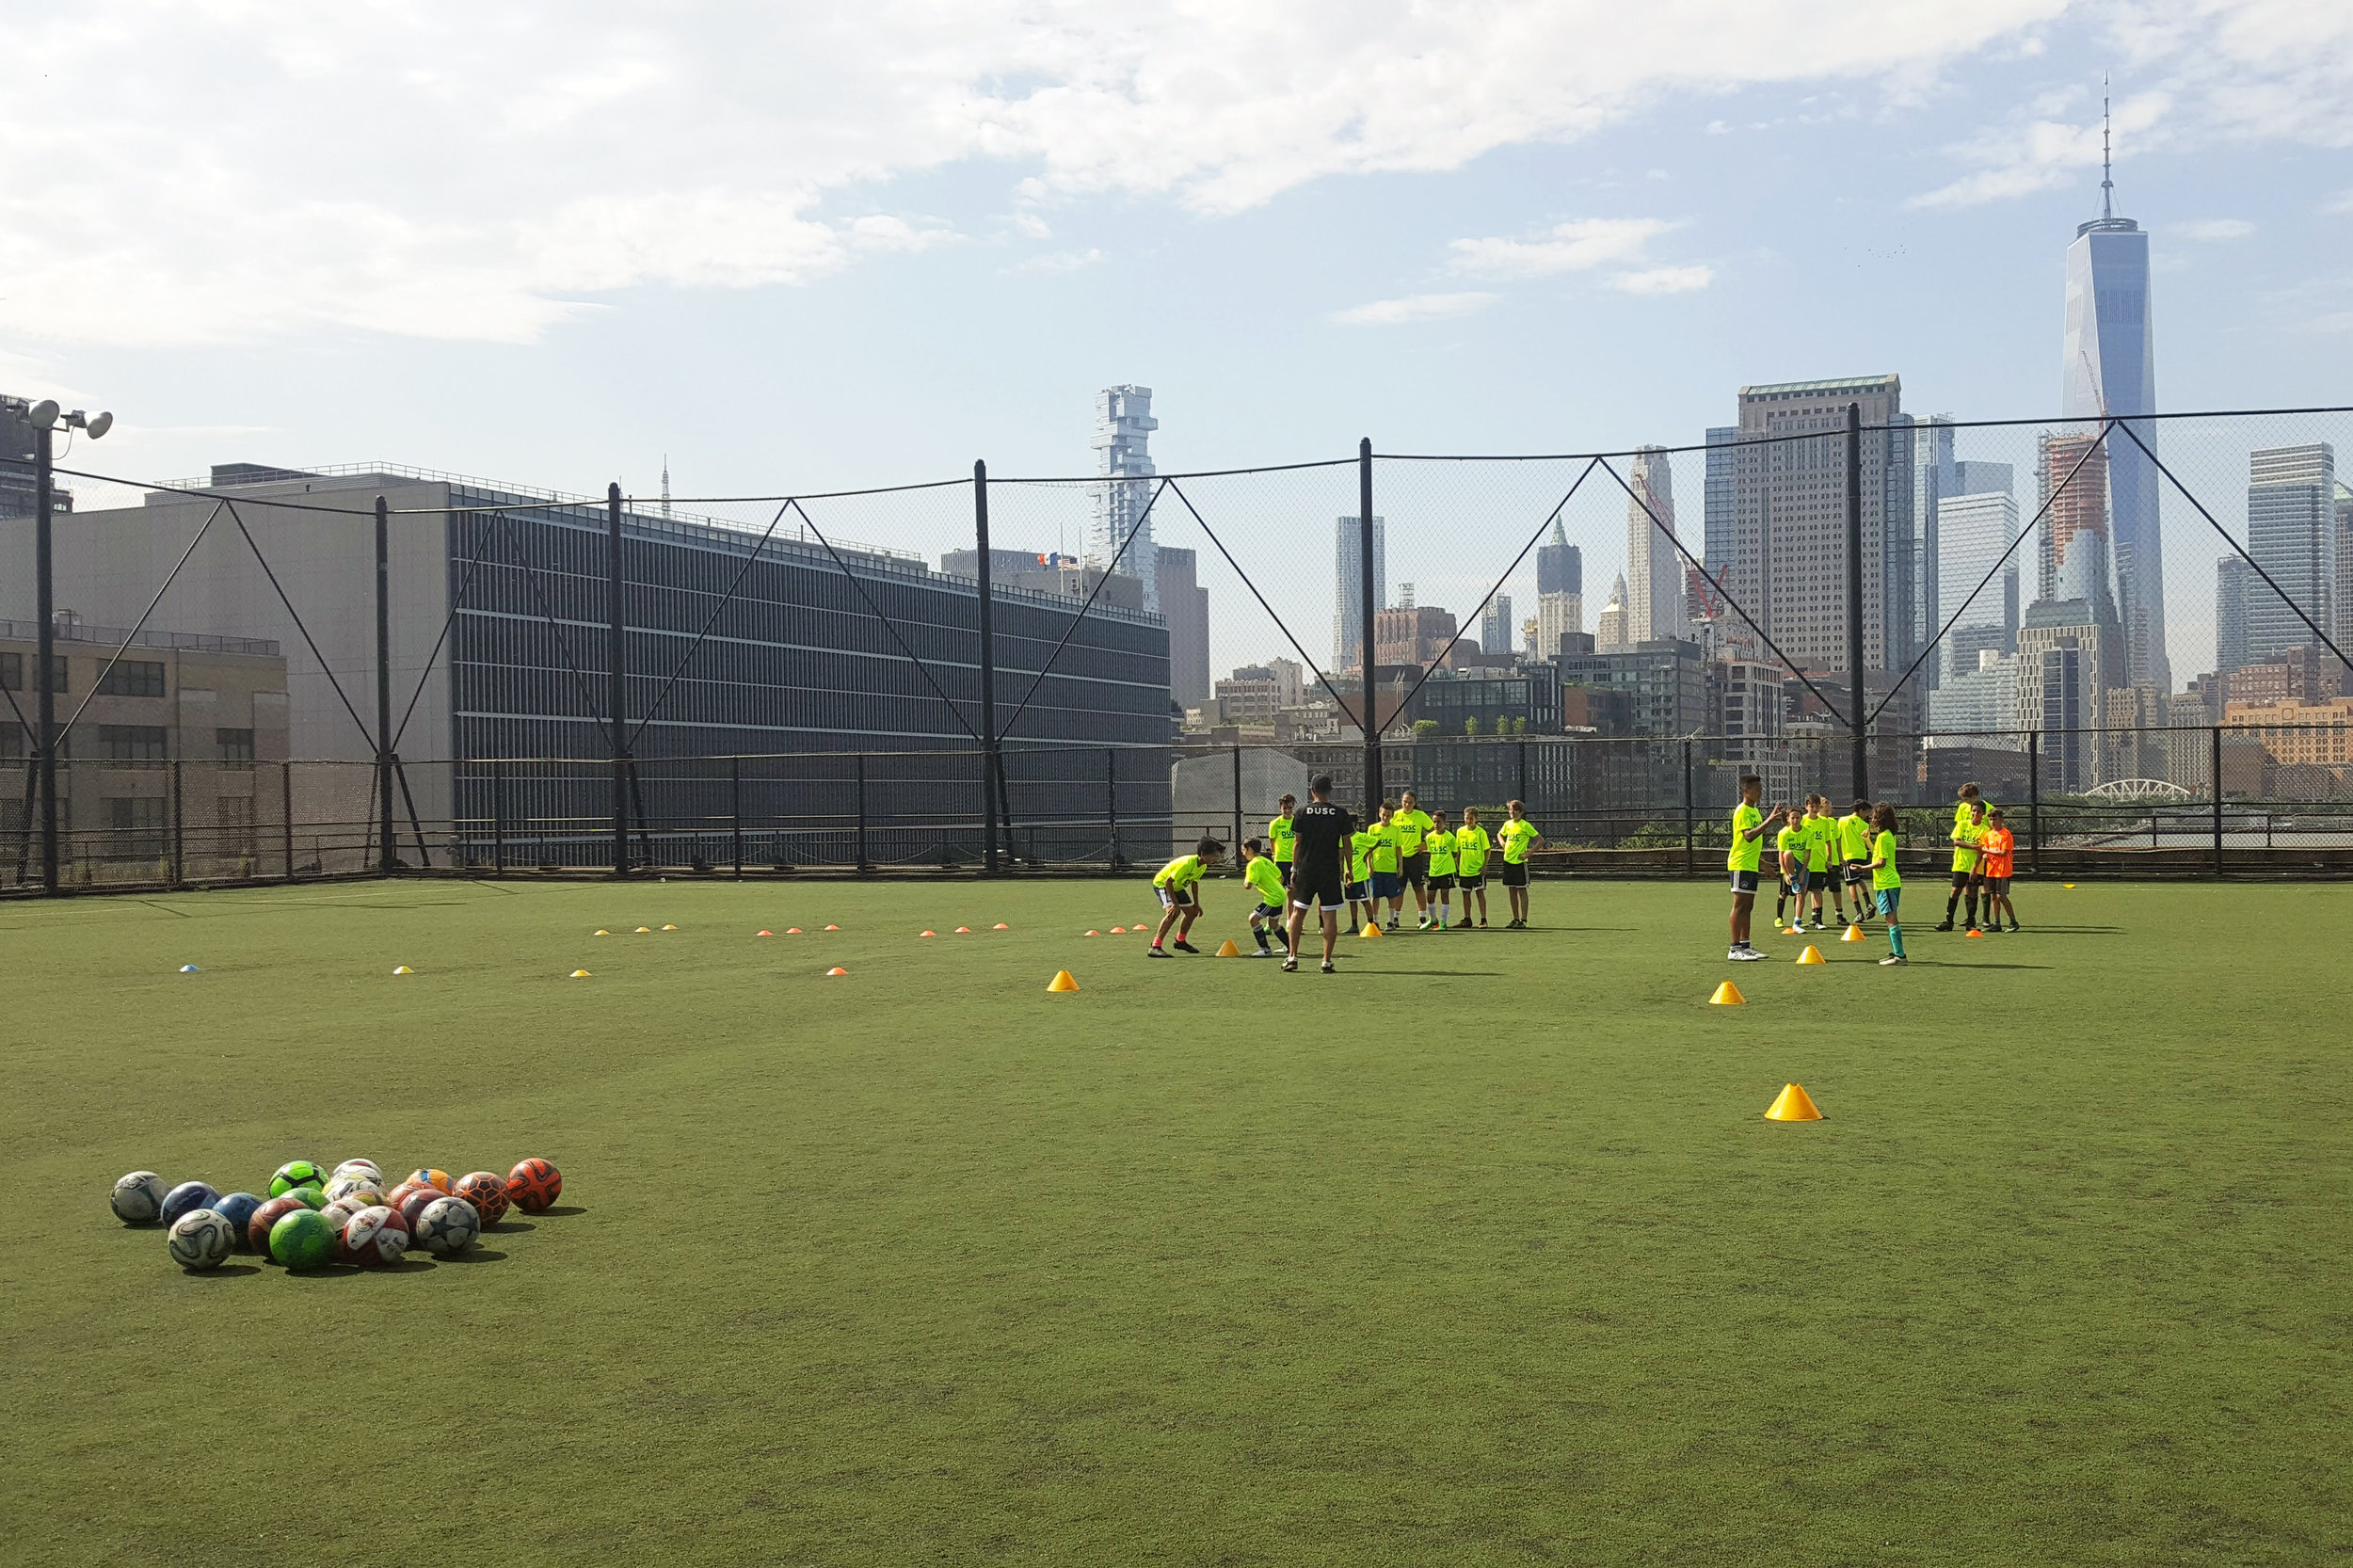 DUSC-downtown-united-soccer-club-youth-new-york-city_advanced_camps_001.jpg